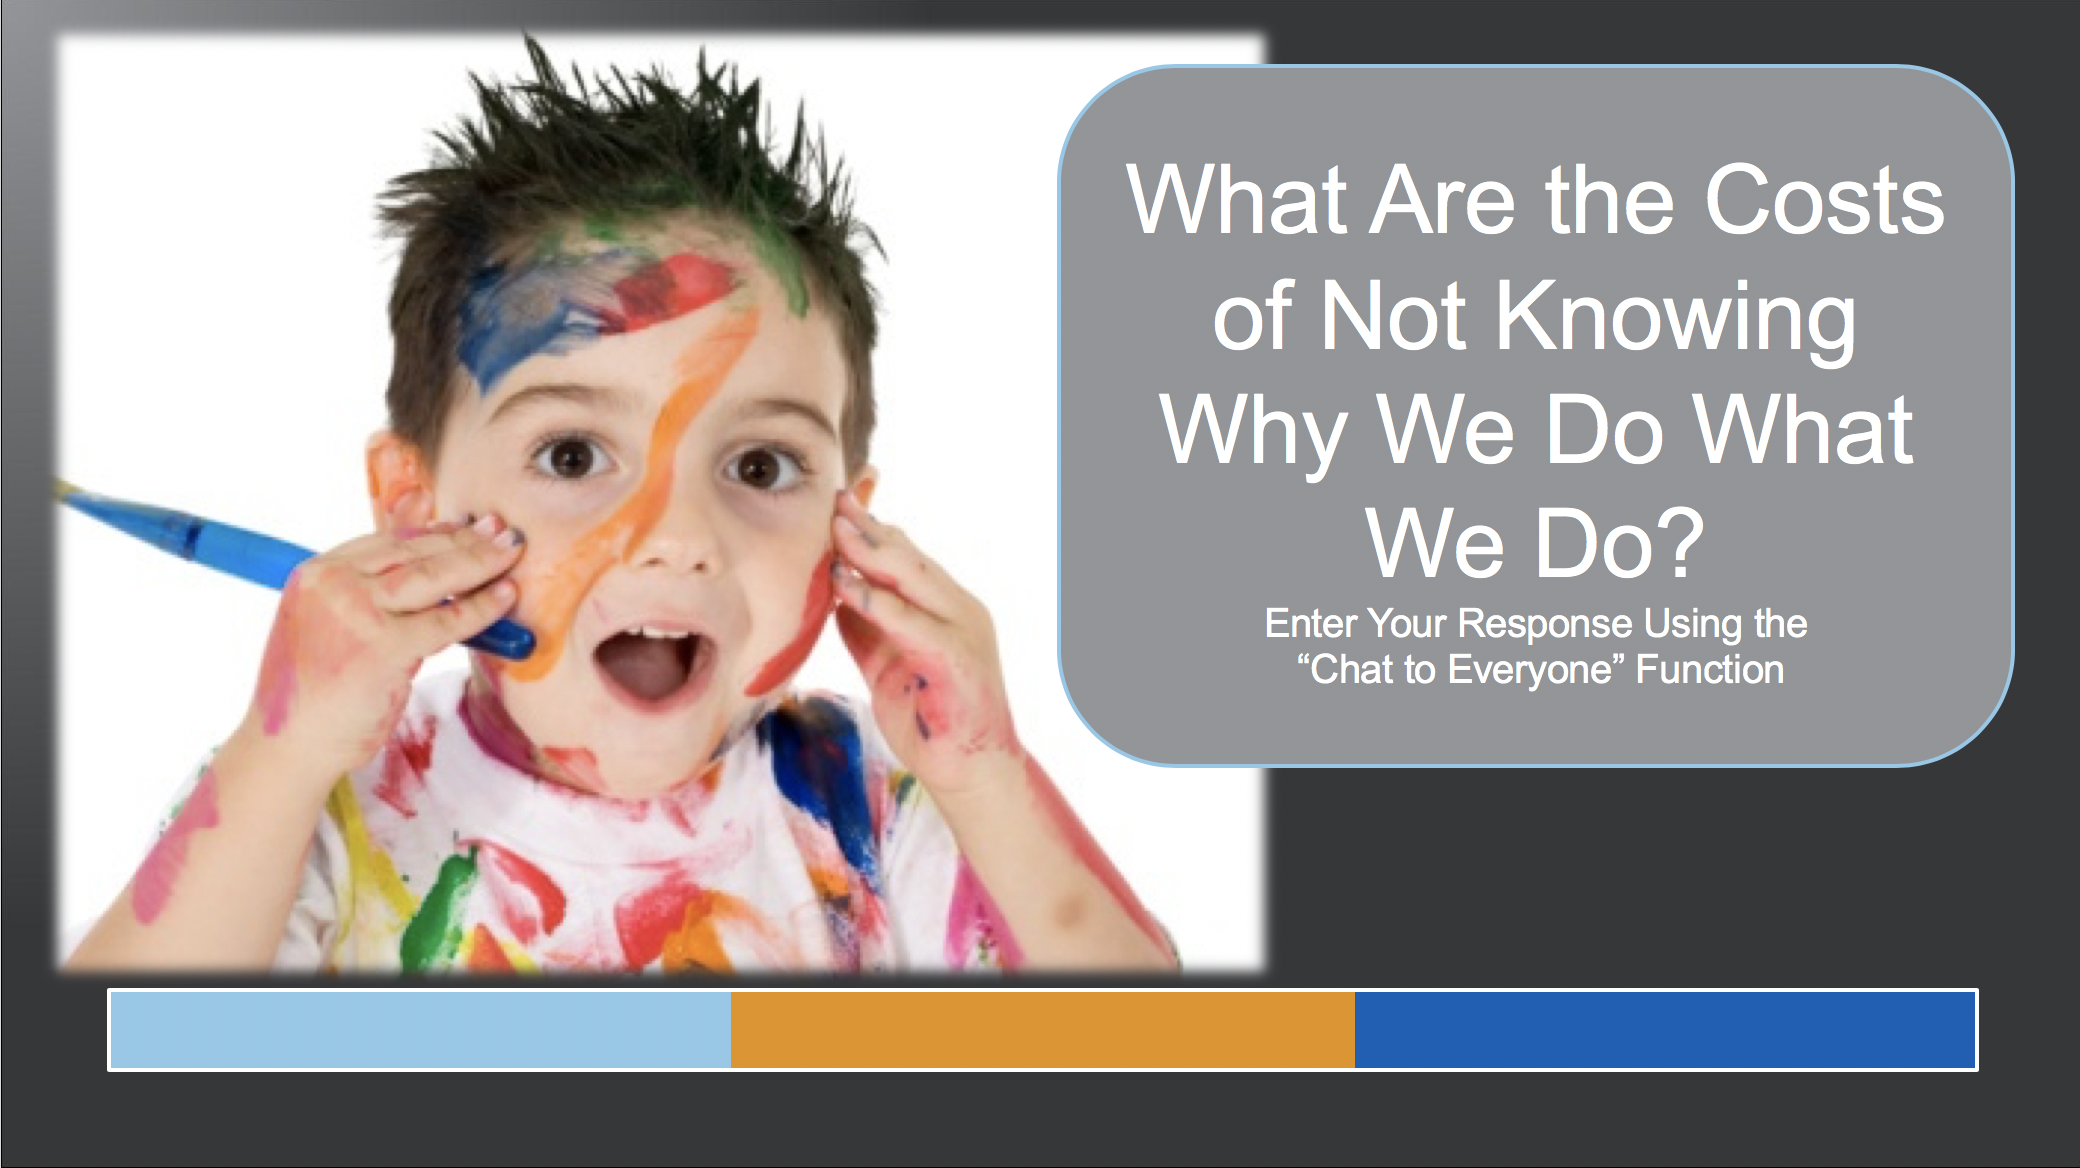 What are the costs of not knowing why we do what we do?